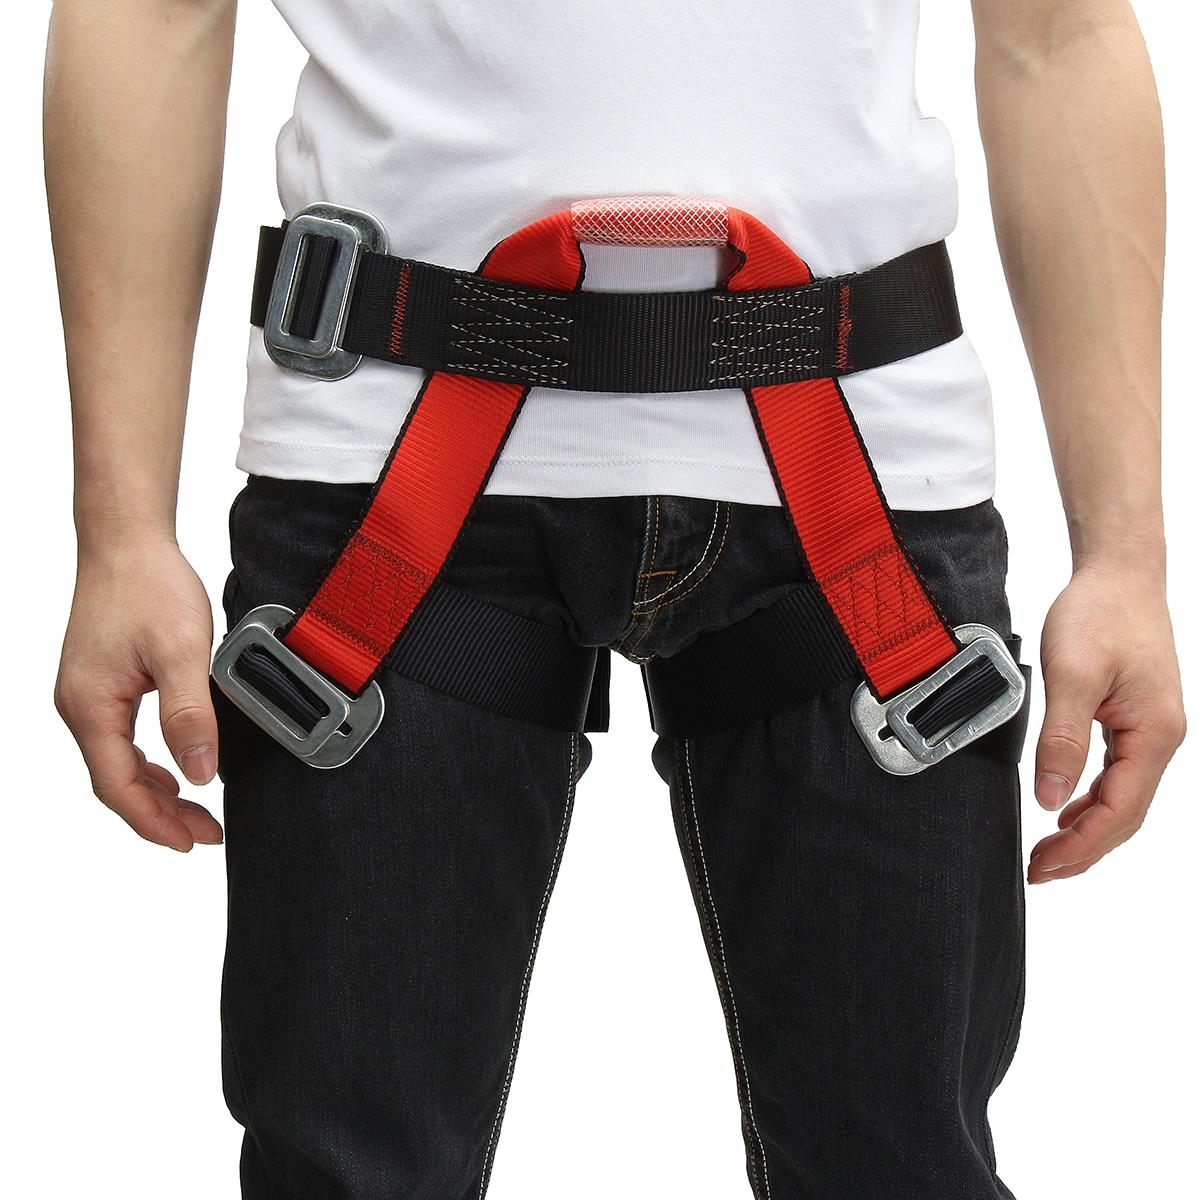 Outdoor Climbing Safety Belt Half Body Protecting for Rock Climbing Downhill Harness Rappel Safety Belt climbing accessories